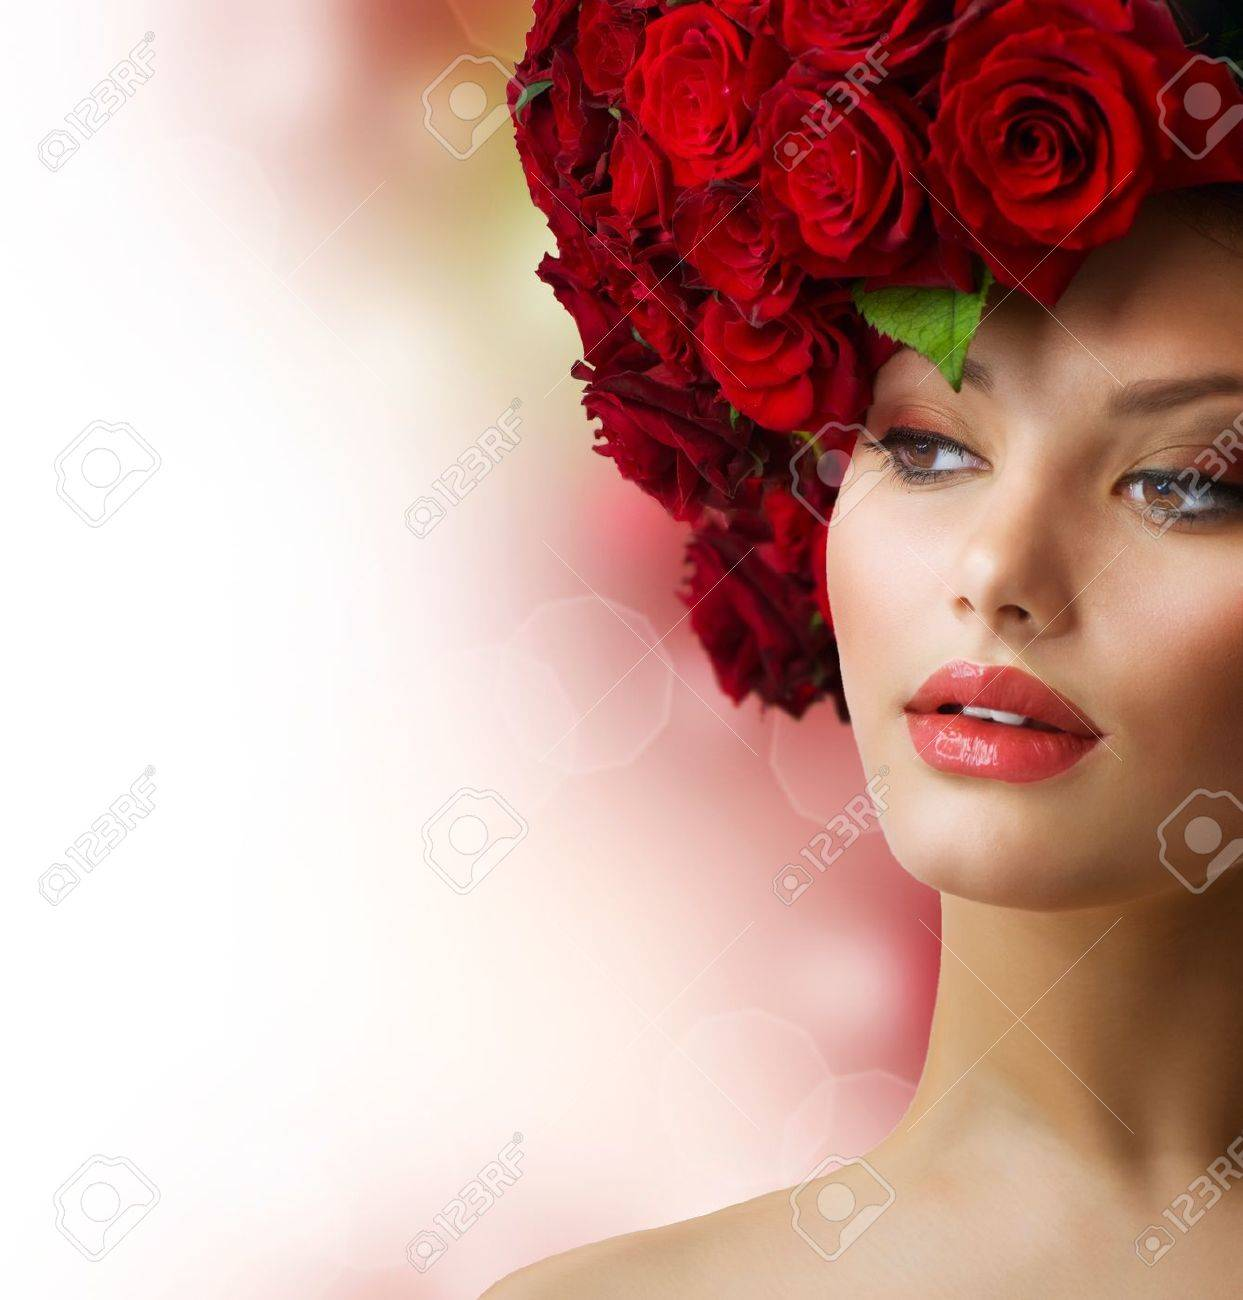 Fashion Model Portrait with Red Roses Hair Stock Photo - 14193548